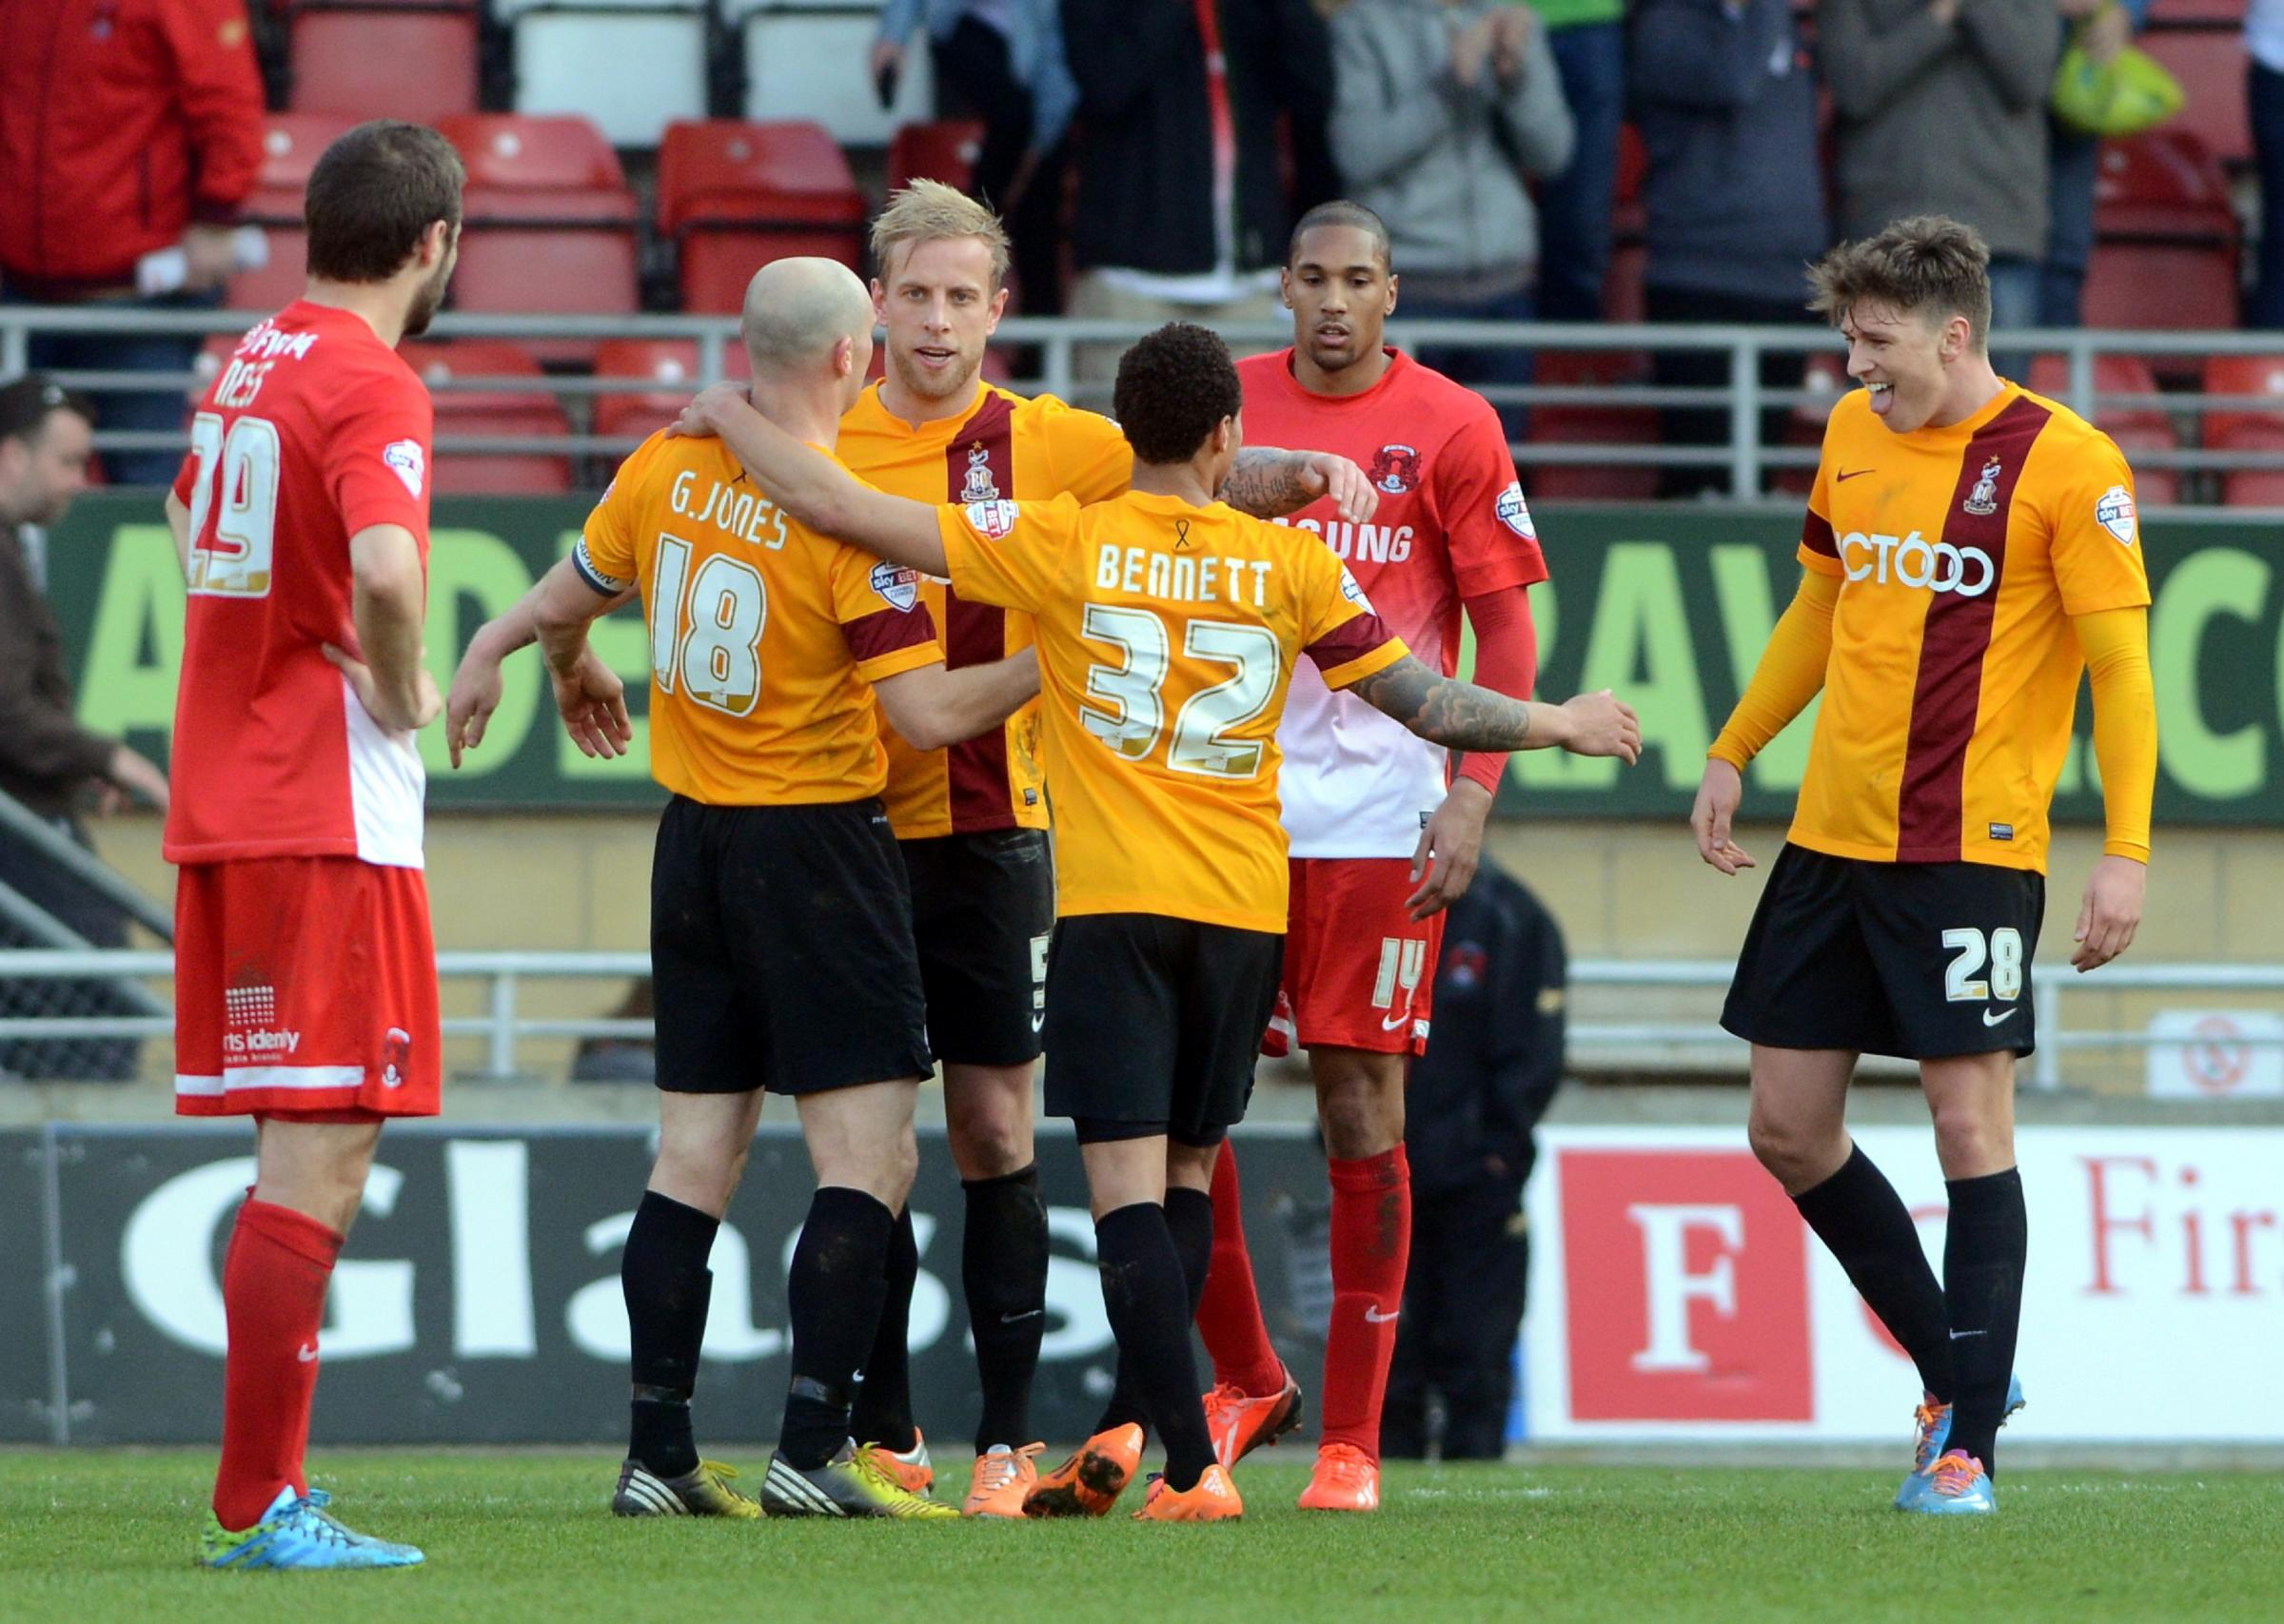 Bantams Aaron their way to safety after crucial win